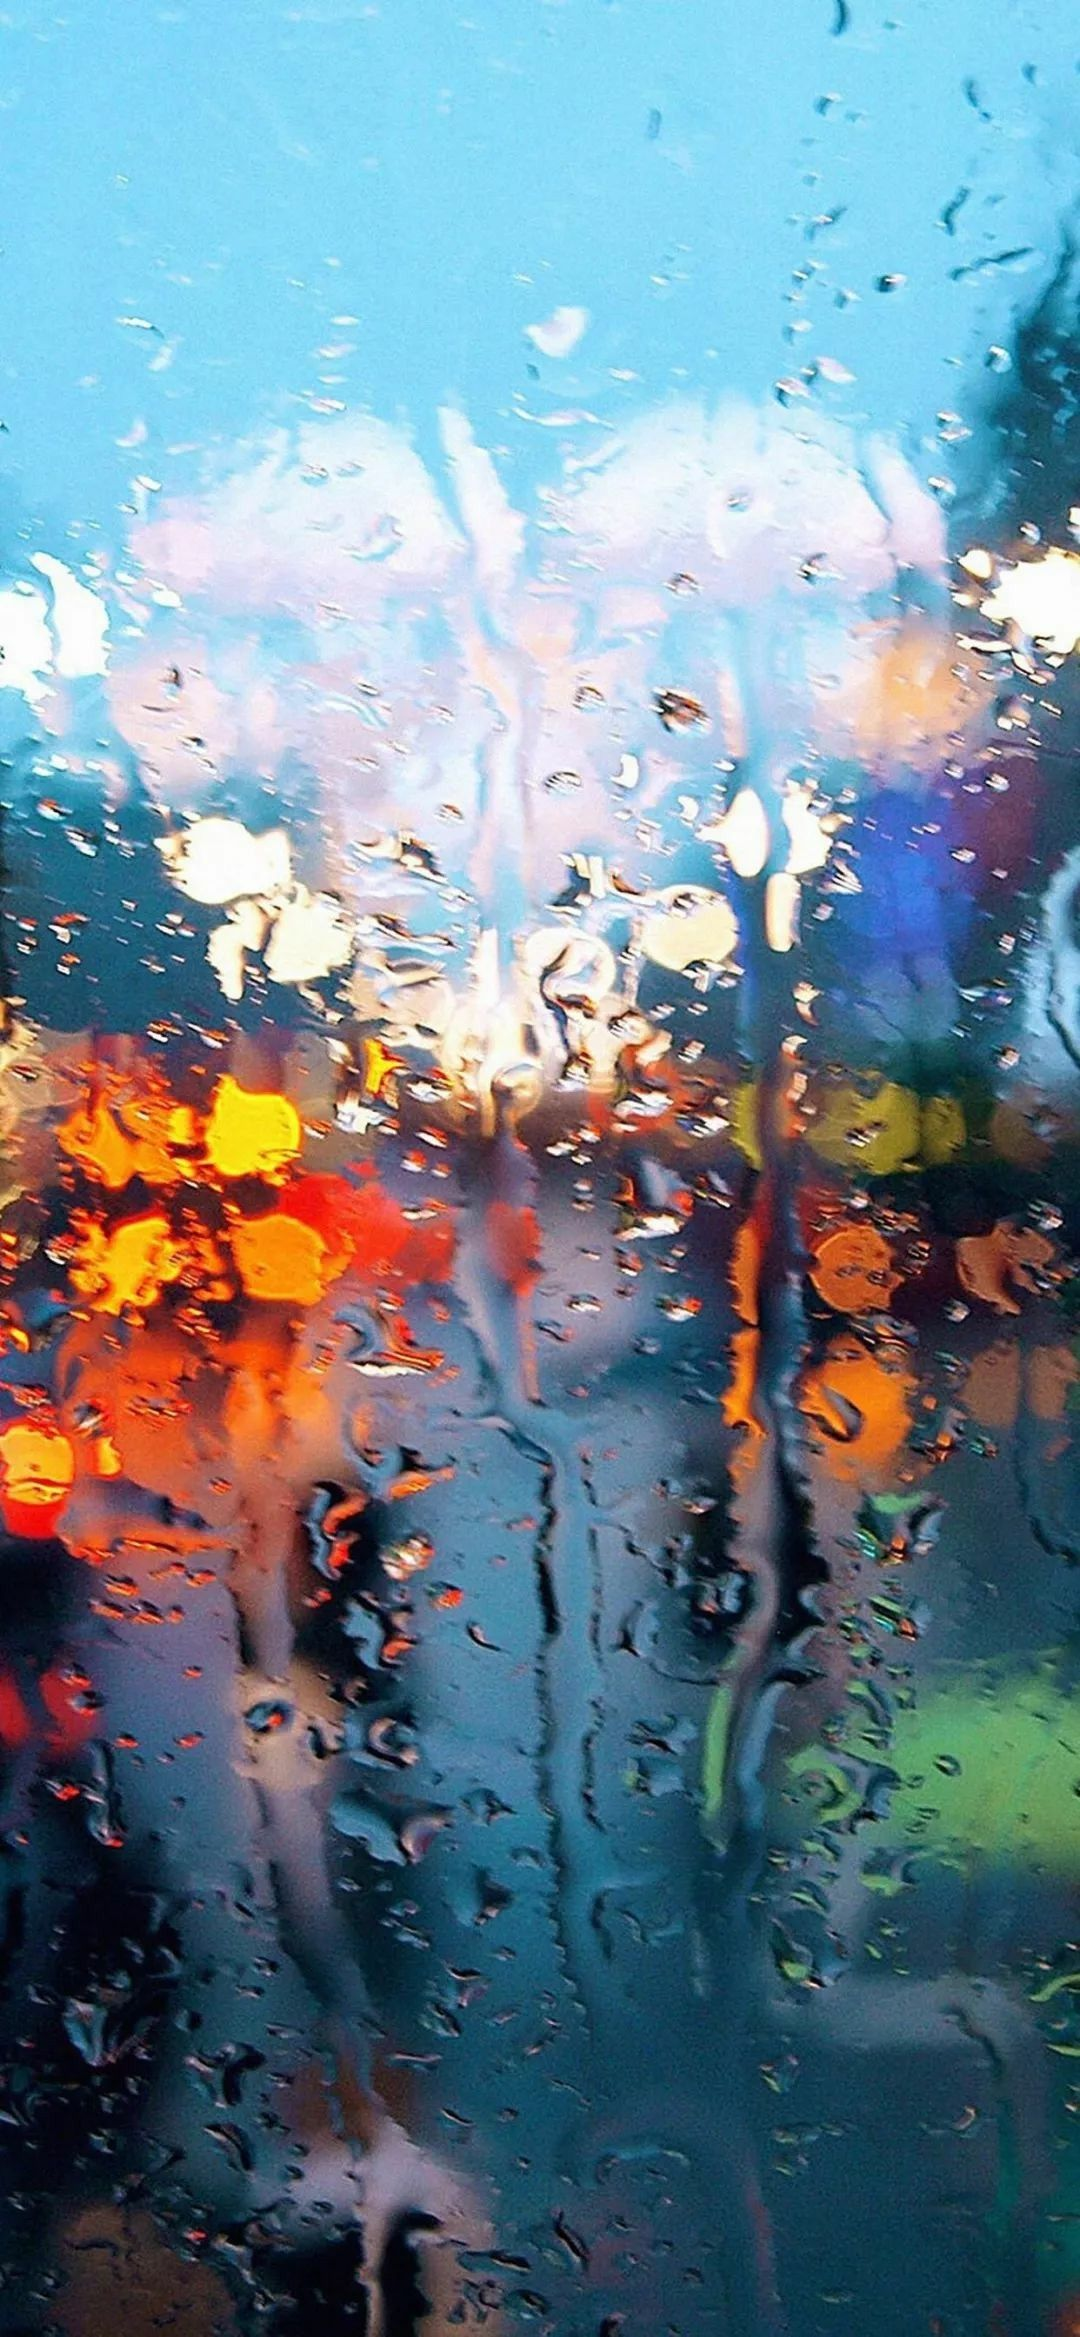 Pin by 海威 王 on 雨景 (With images) Rain wallpapers, Iphone